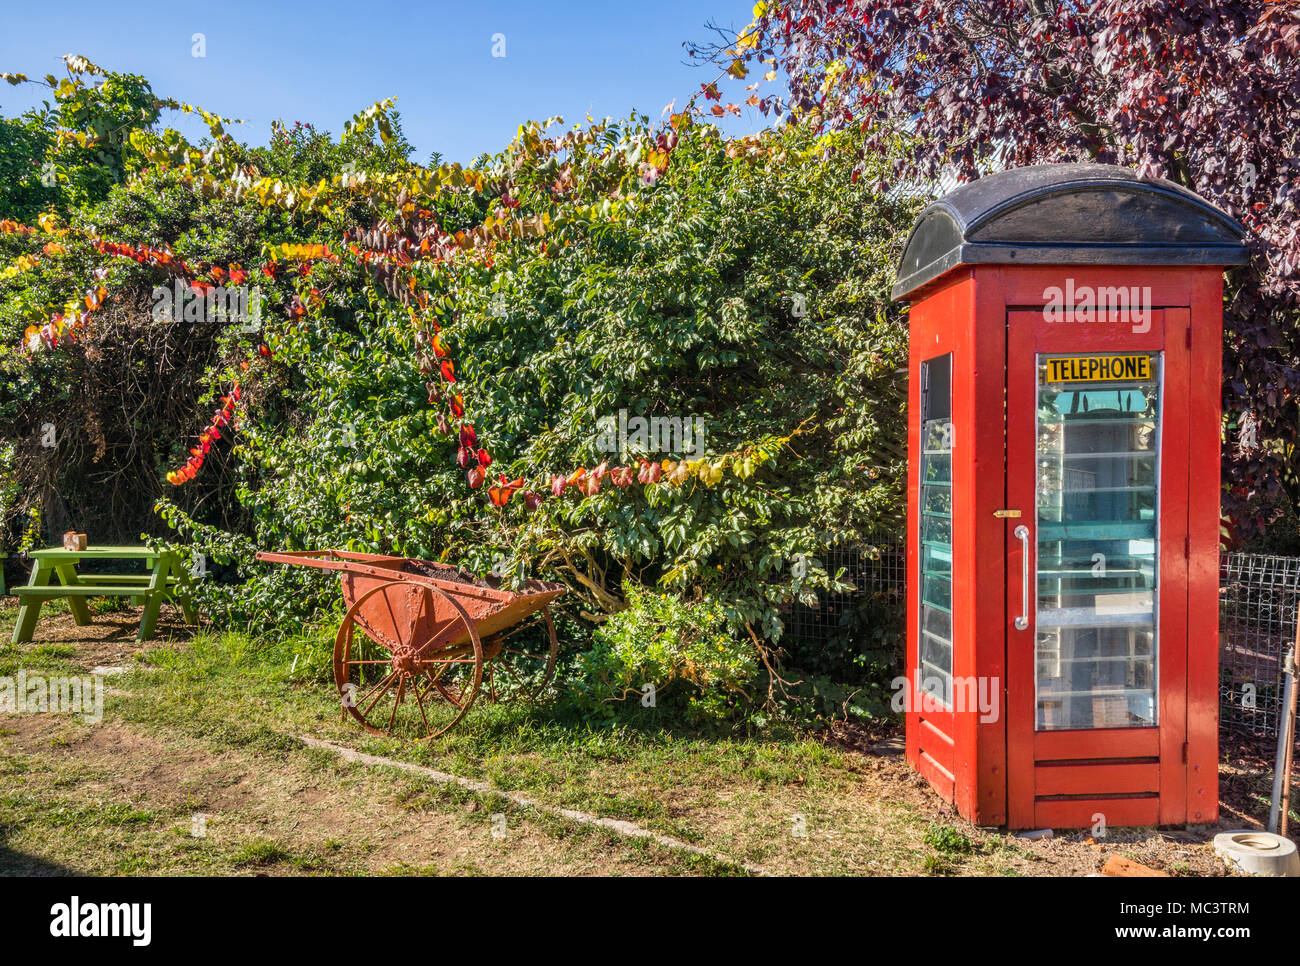 quaint telephone booth in an idyllic Millthorpe backyard, Central West New South Wales, Australia - Stock Image